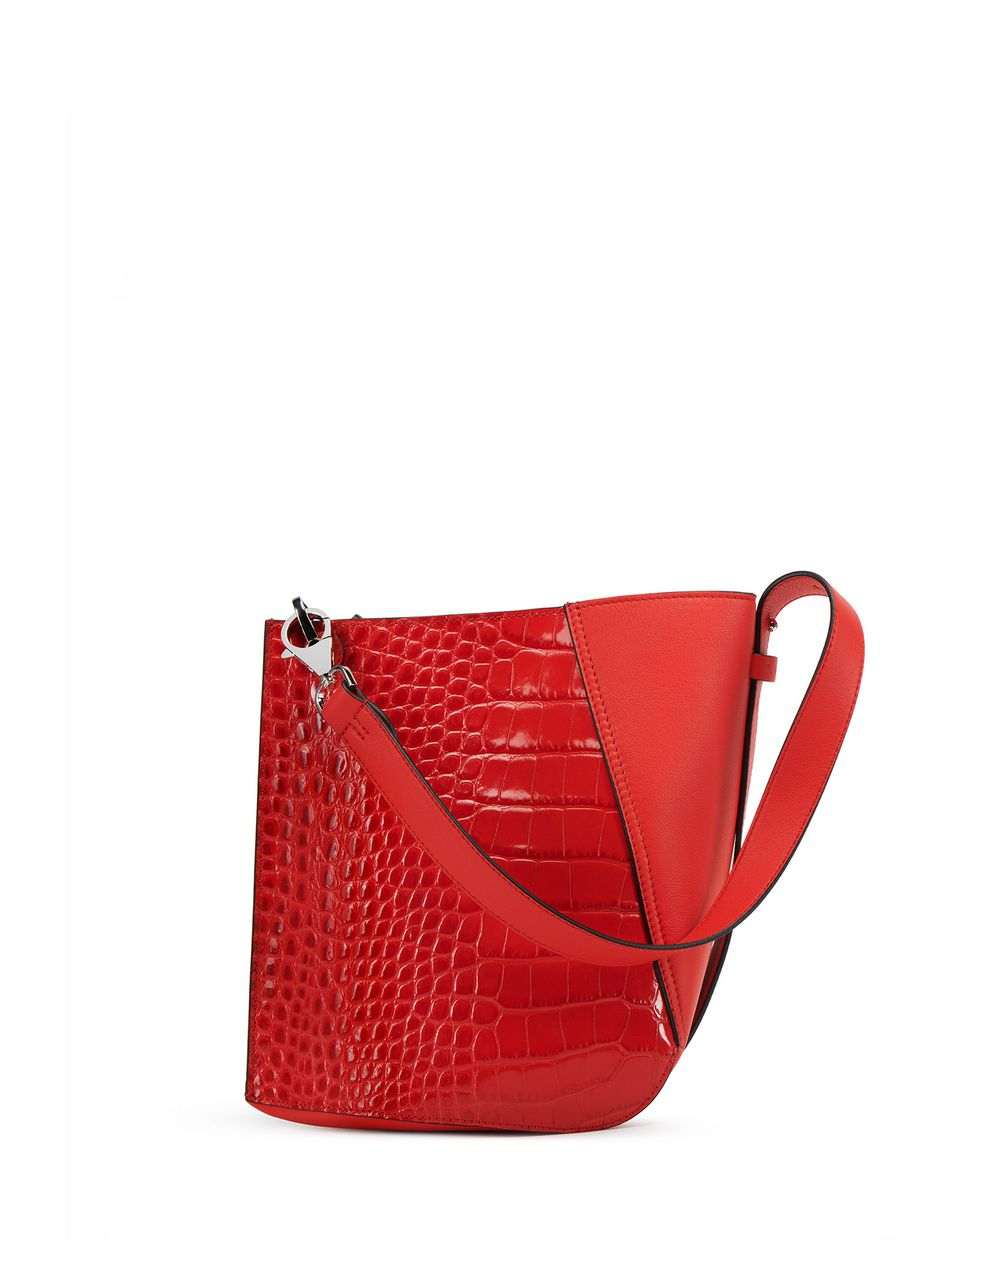 HOOK CROC-EFFECT BAG SMALL - Lanvin